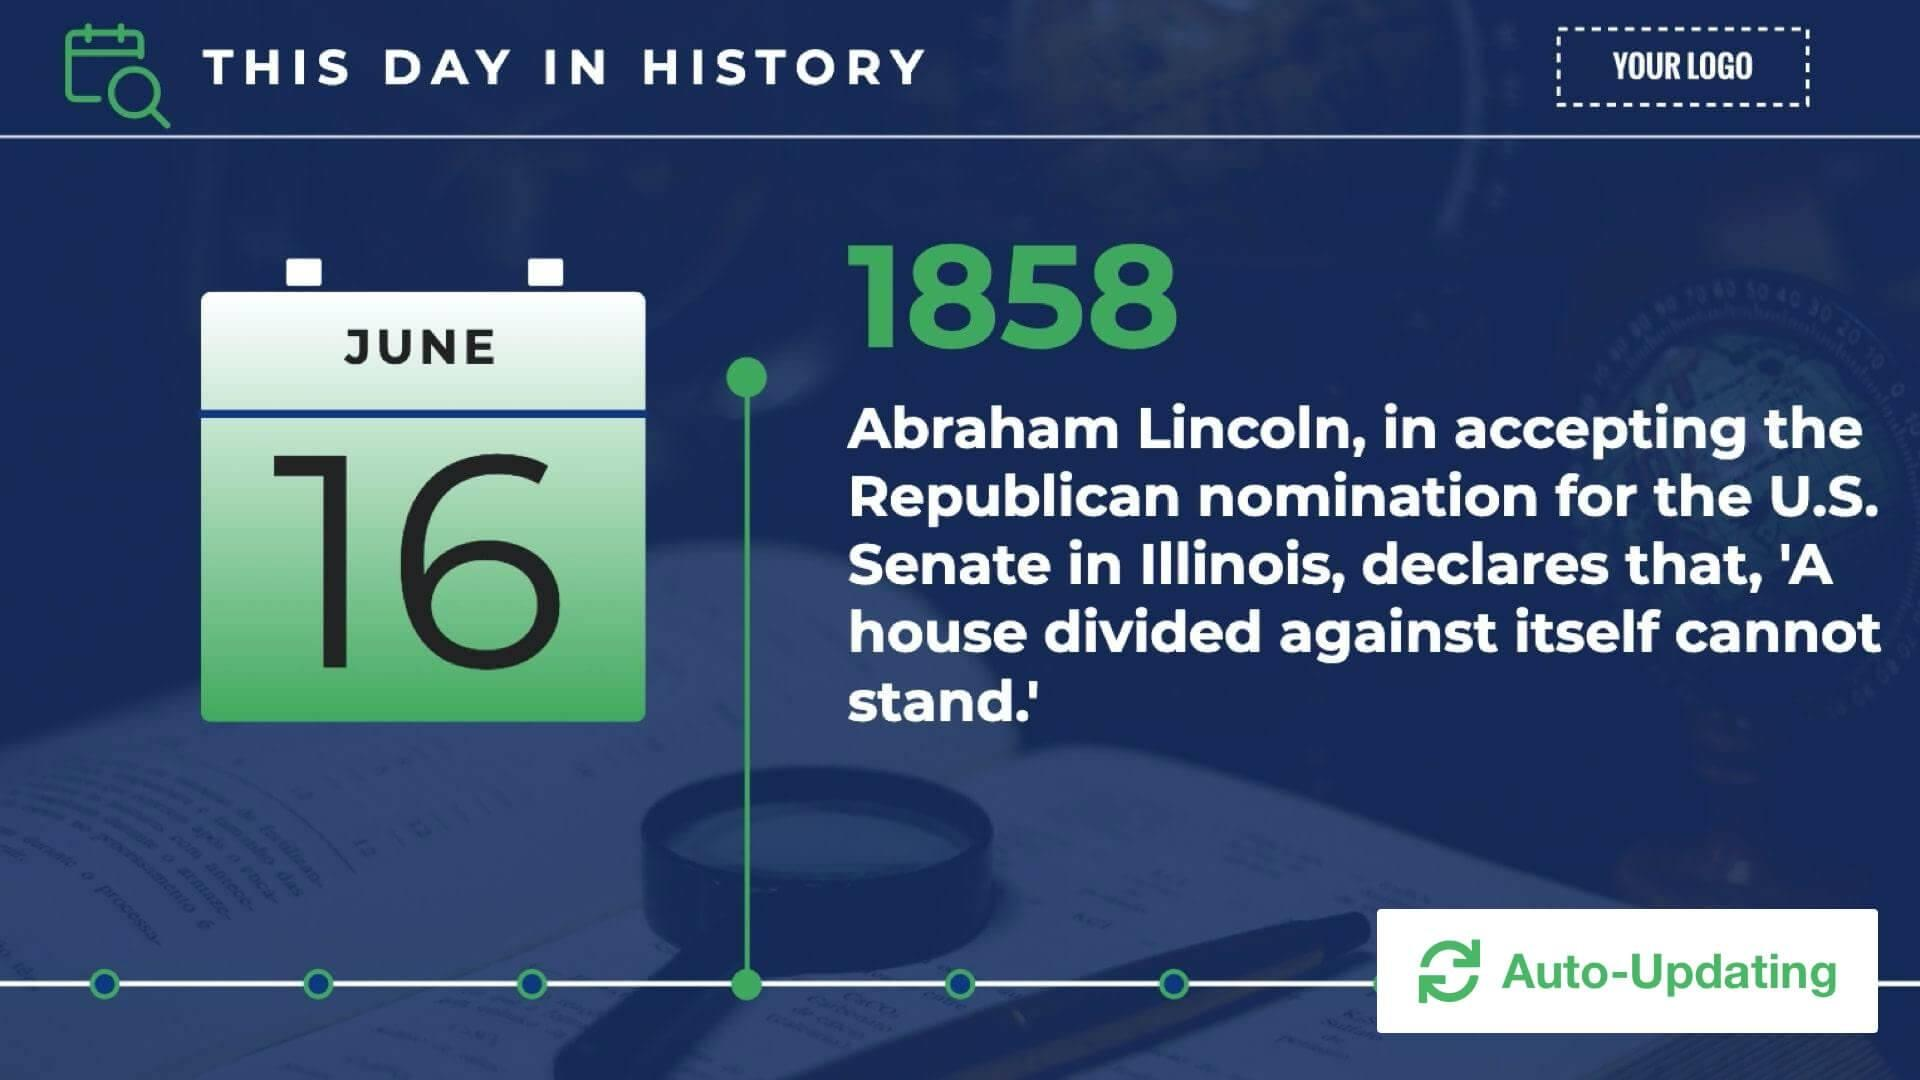 History - On This Day Digital Signage Template